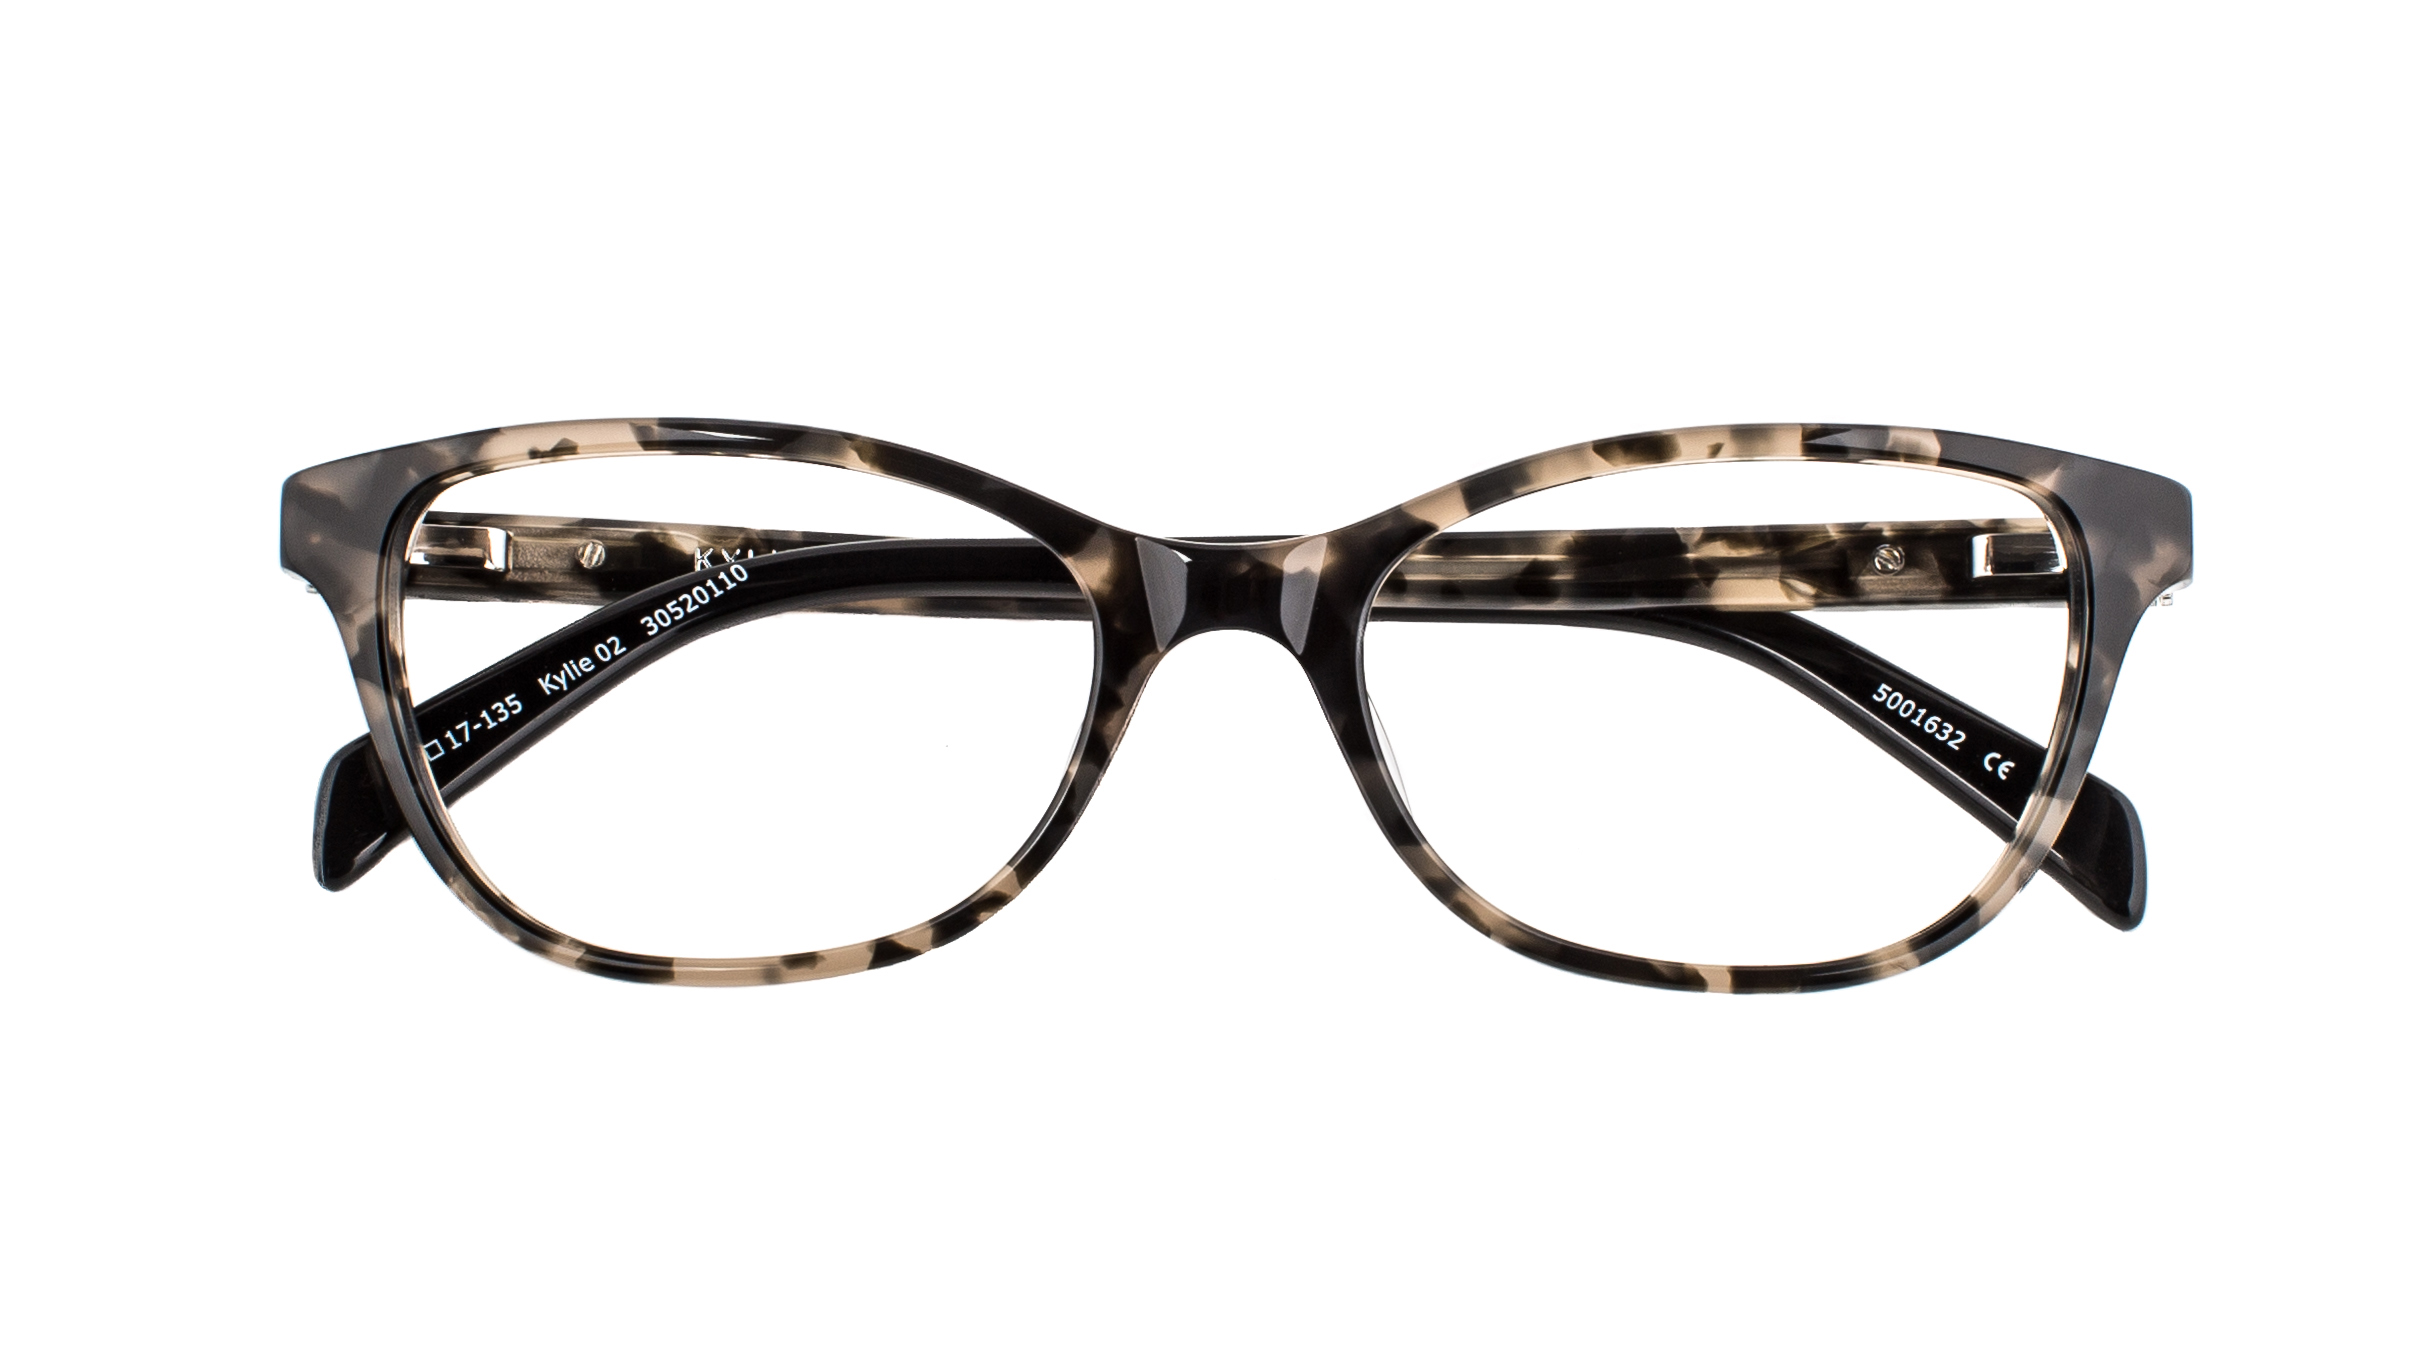 Kylie Minogue Eyewear_Kylie 02_SKU 30520110_RRP 2 pairs from $369